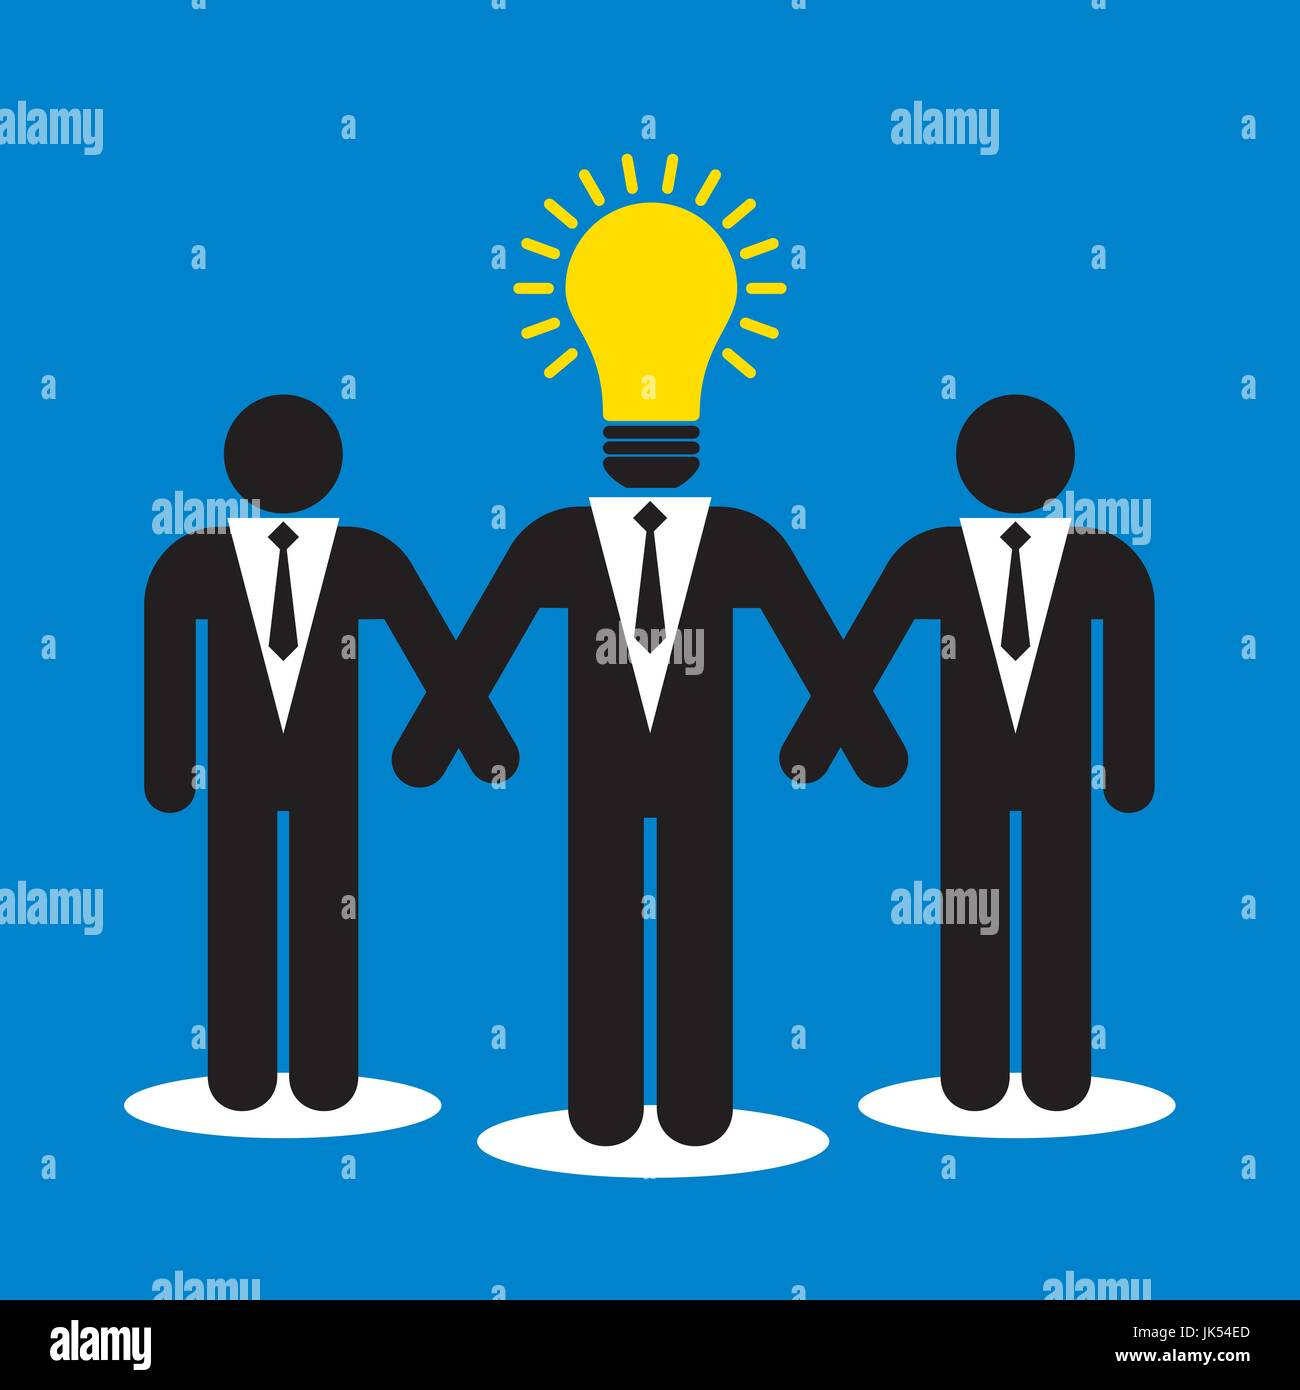 Creative leadership in teamwork business solution - Stock Vector